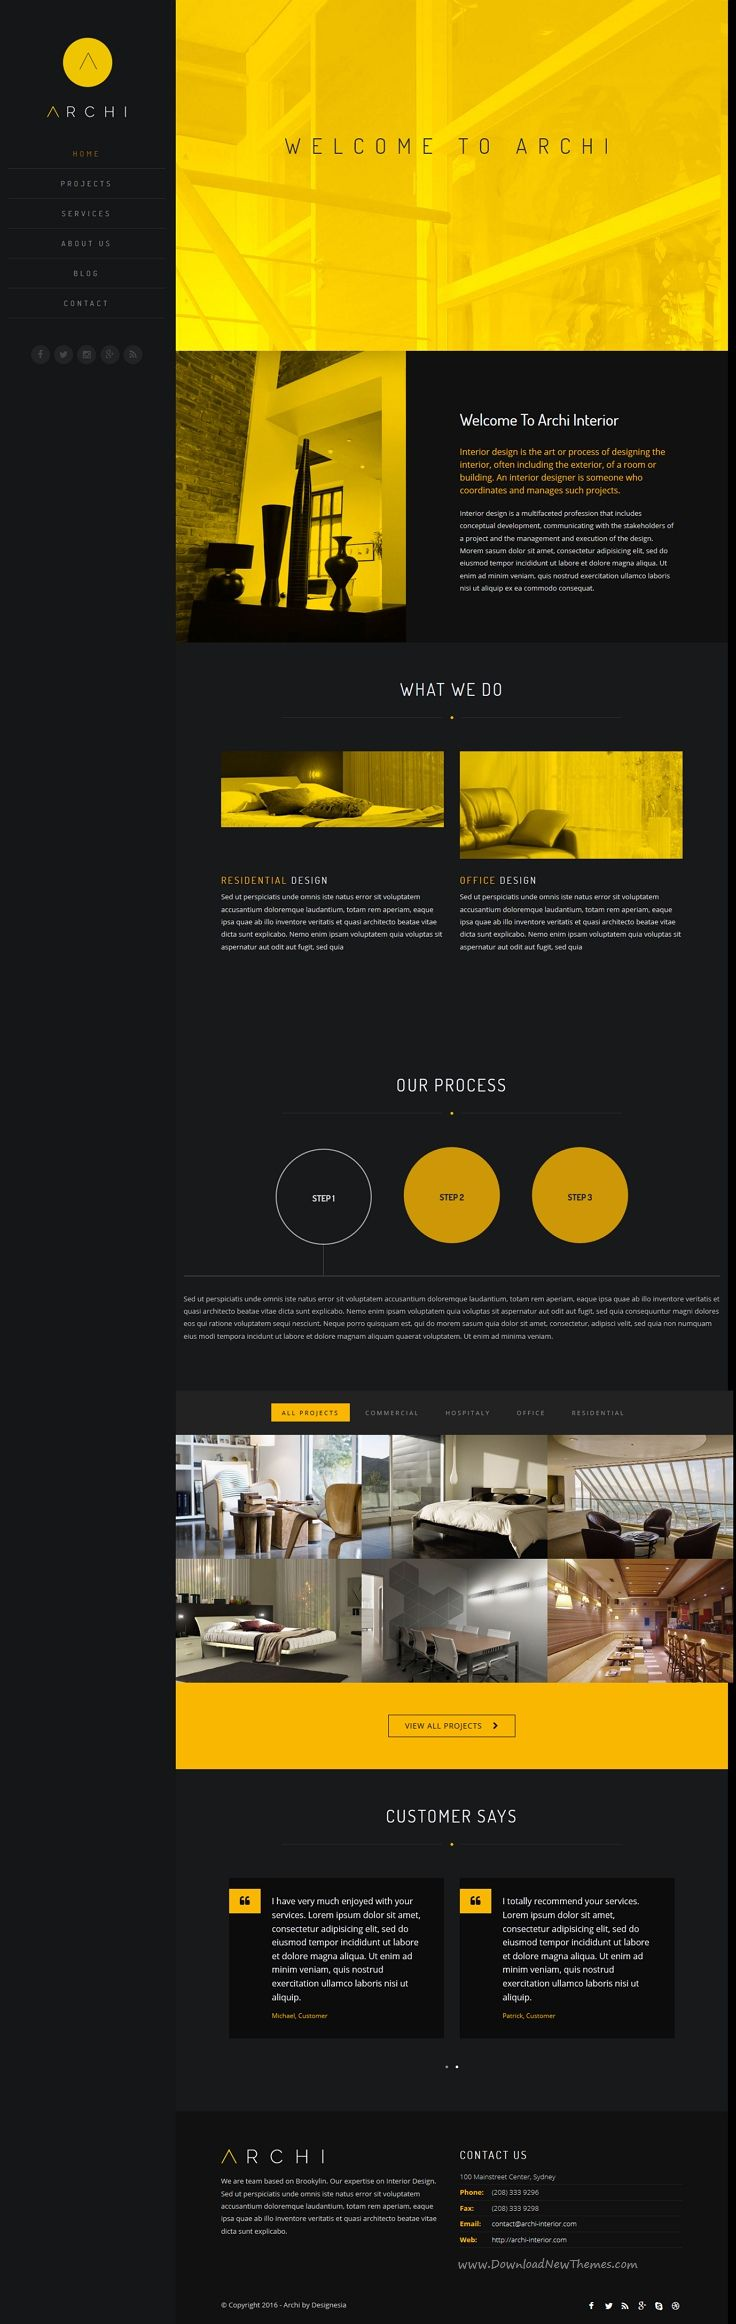 Archi is modern design premium #Drupal #template for #InteriorDesign services website with 8+ stunning homepage layouts download now➯ https://themeforest.net/item/archi-premium-interior-design-drupal-theme/16974929?ref=Datasata